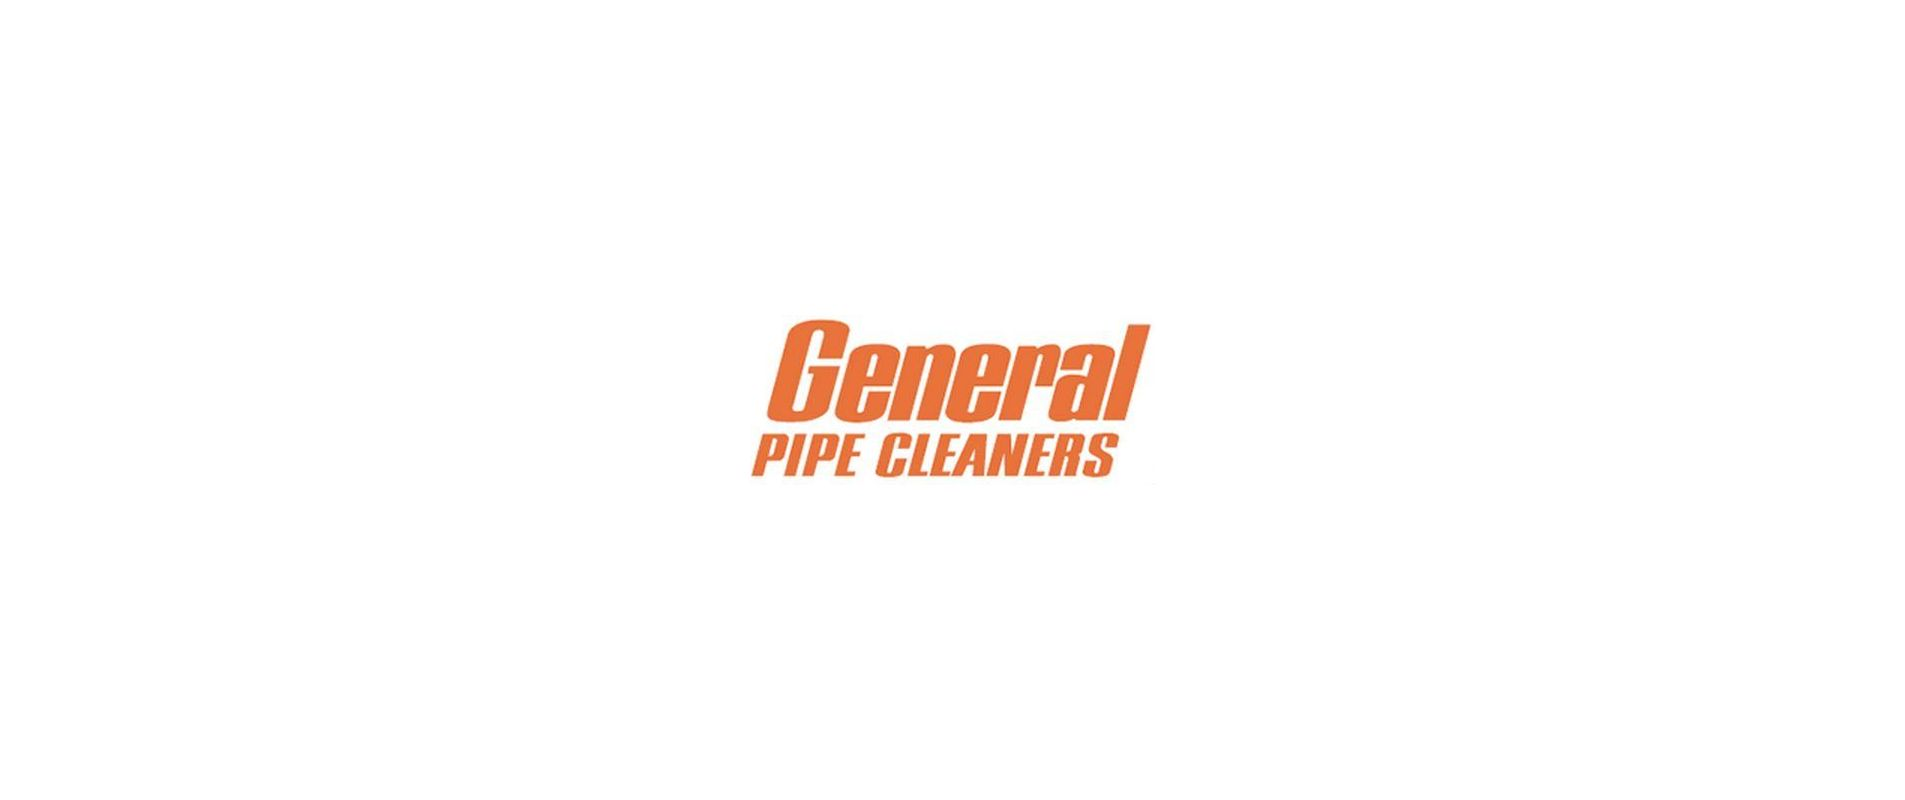 Replacement Grease Fitting for Drain Maintenance Ma - General Pipe Cleaners 182177